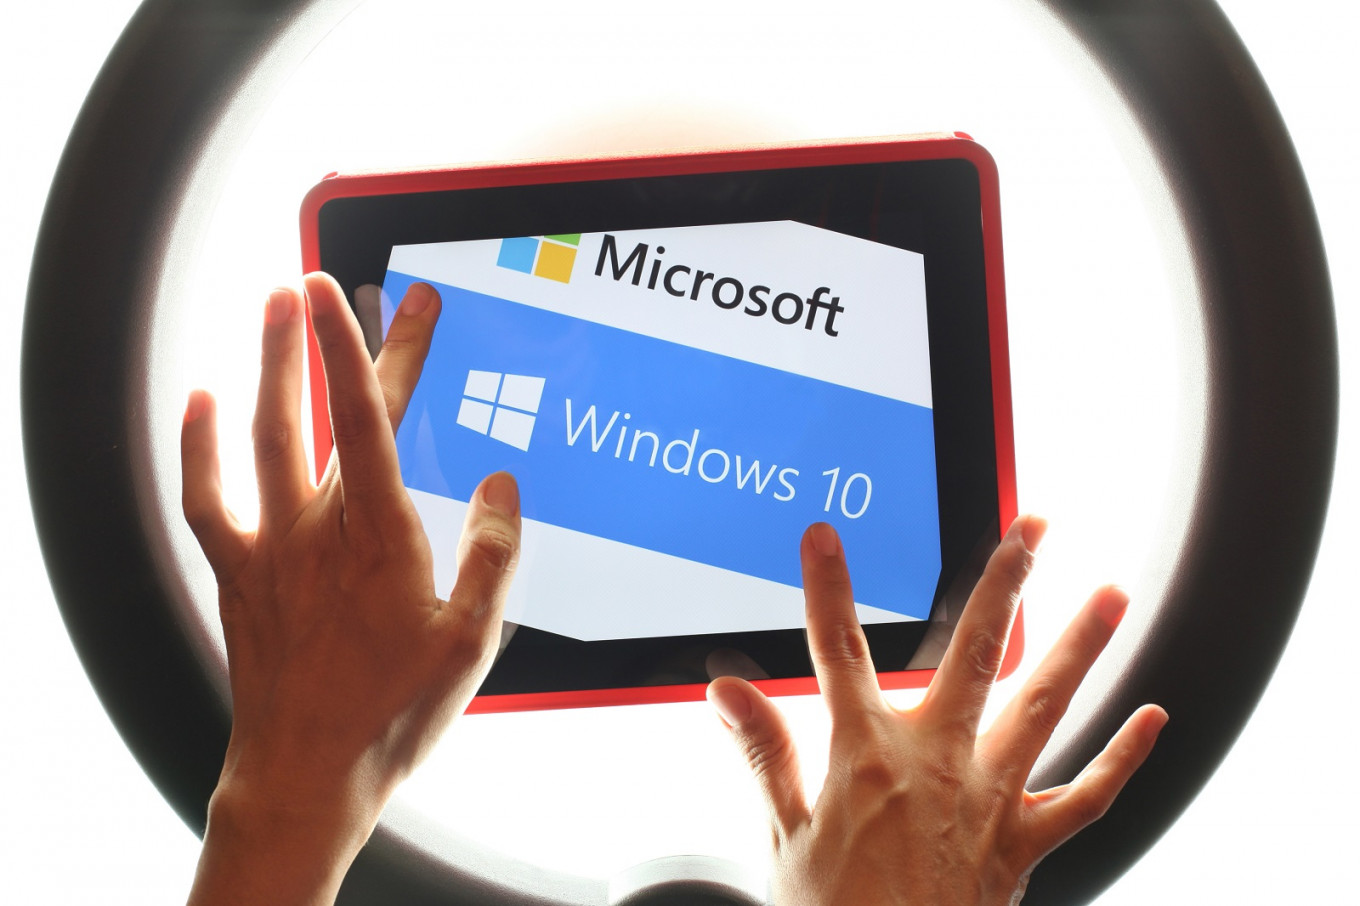 Goodbye Windows 7: Here's how to upgrade your operating system to Windows 10